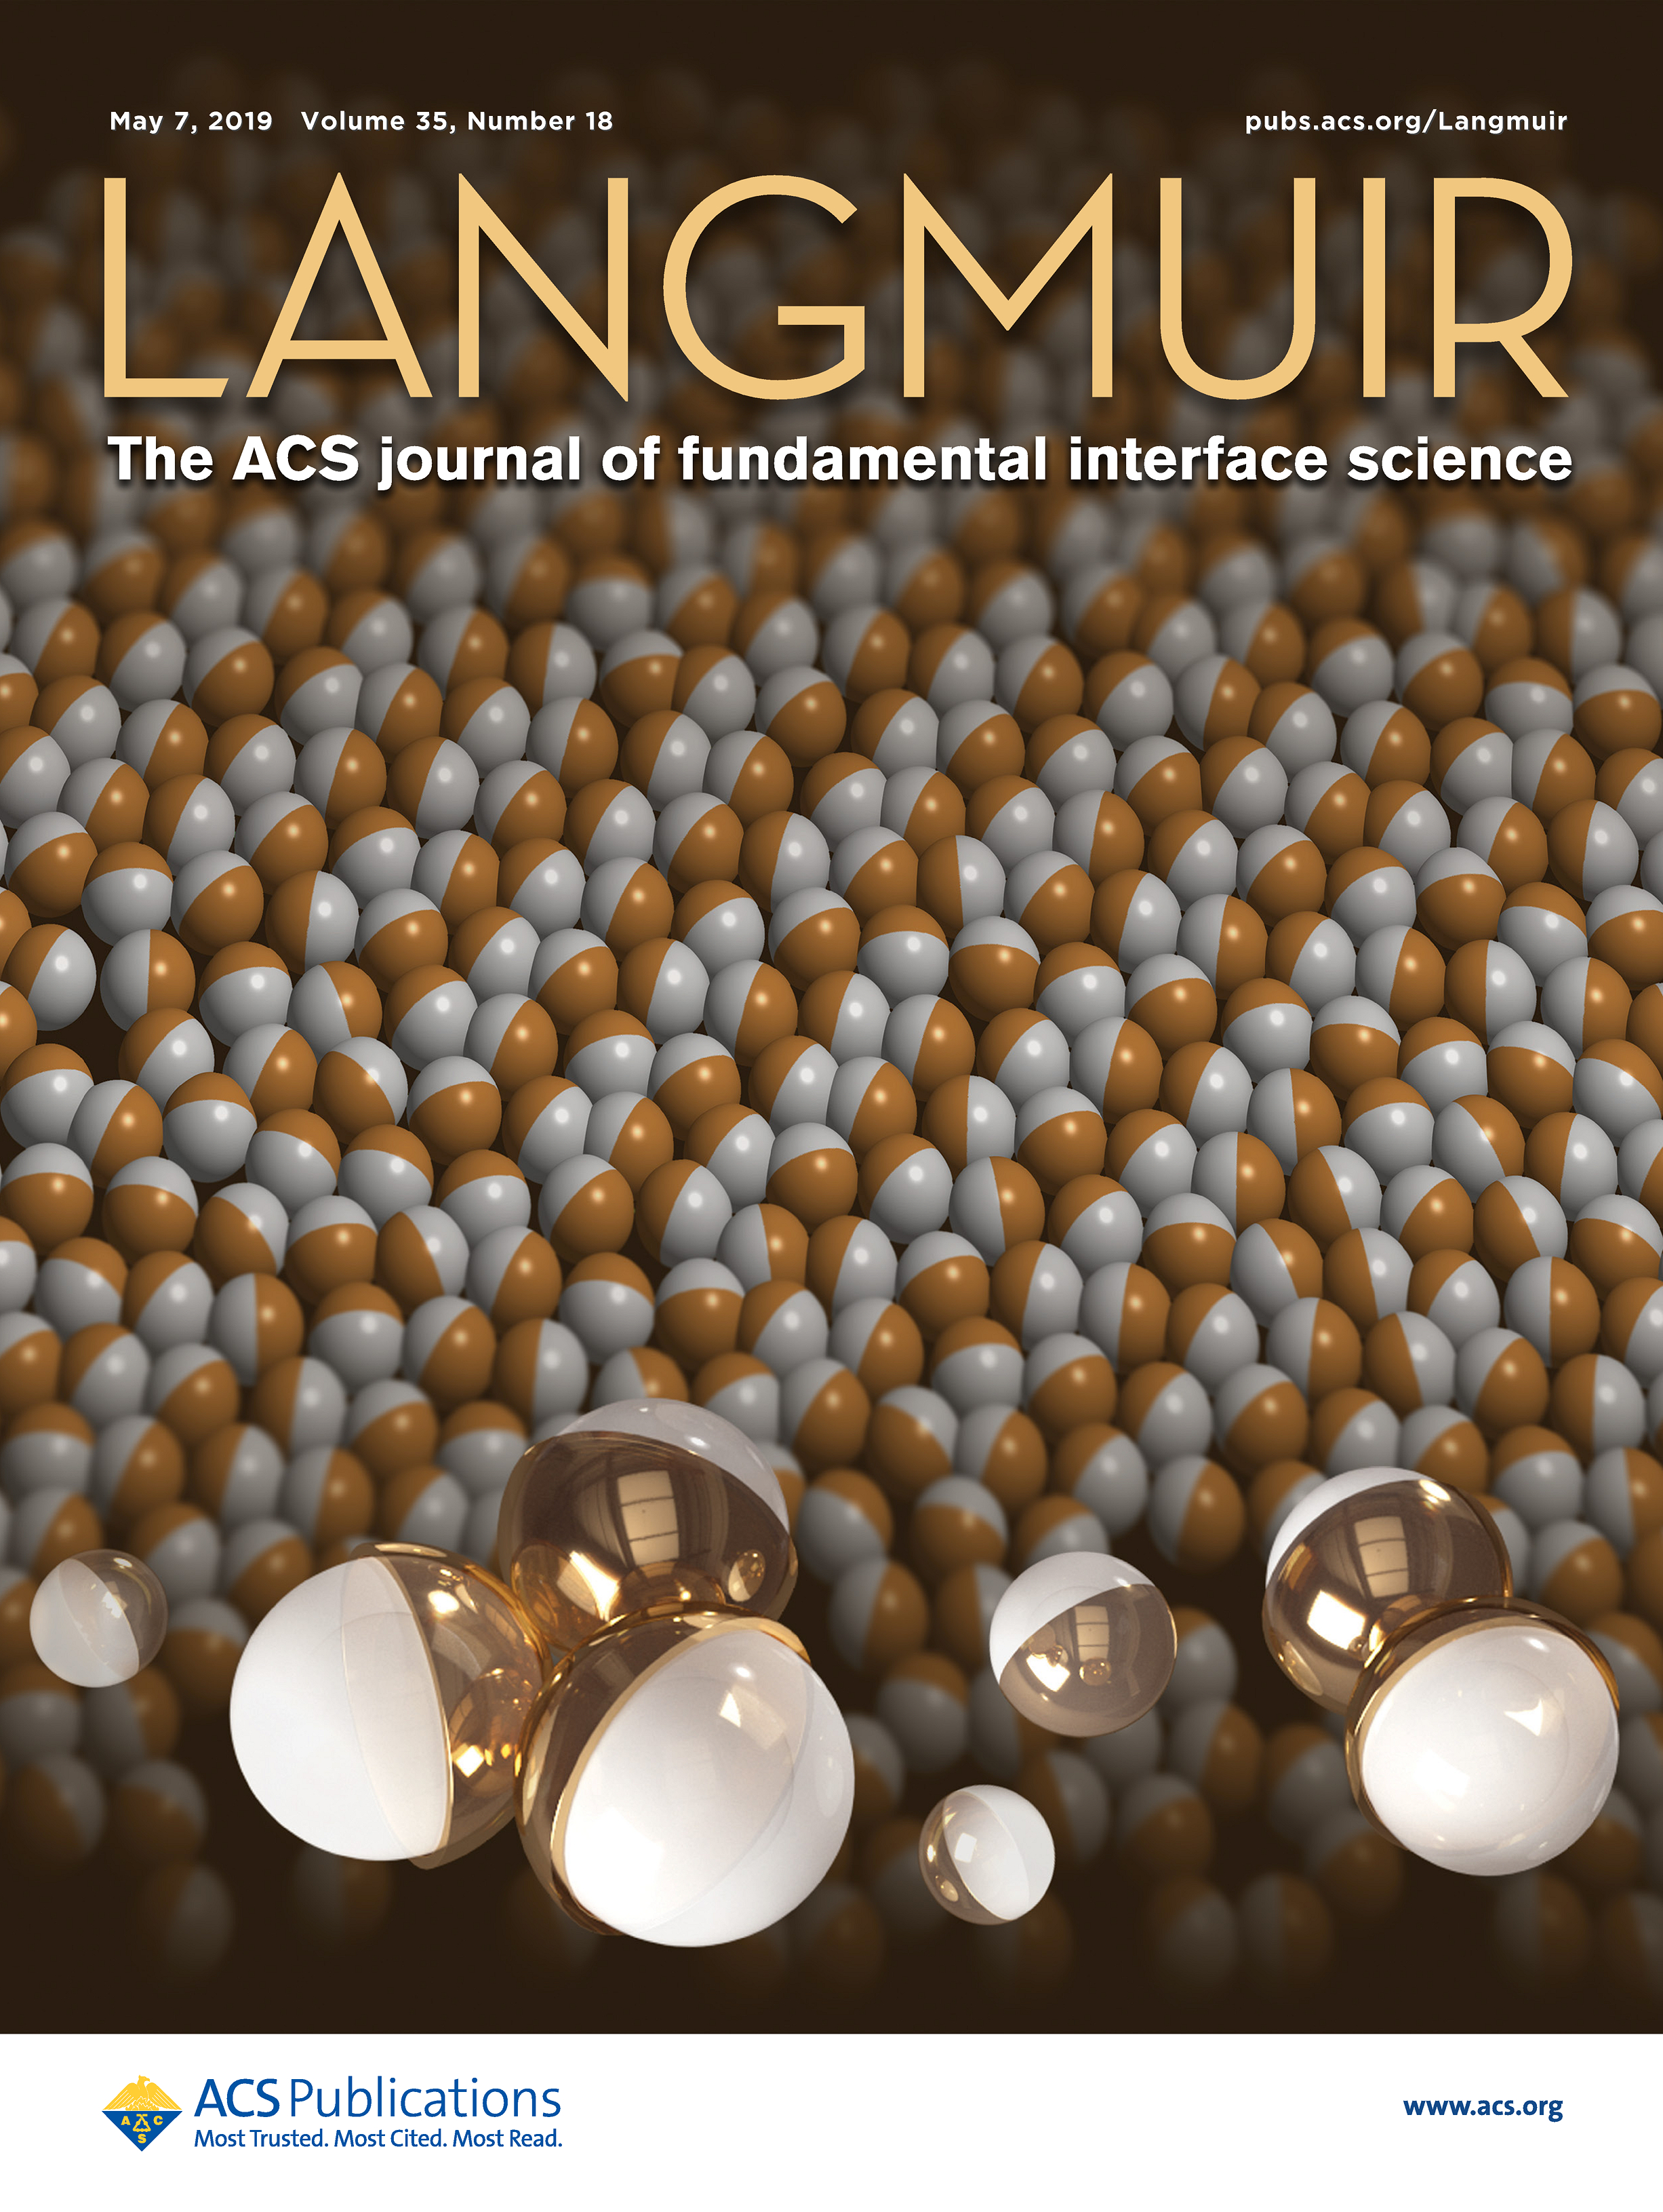 Cover of academic journal showing a layer of gold and white spheres.